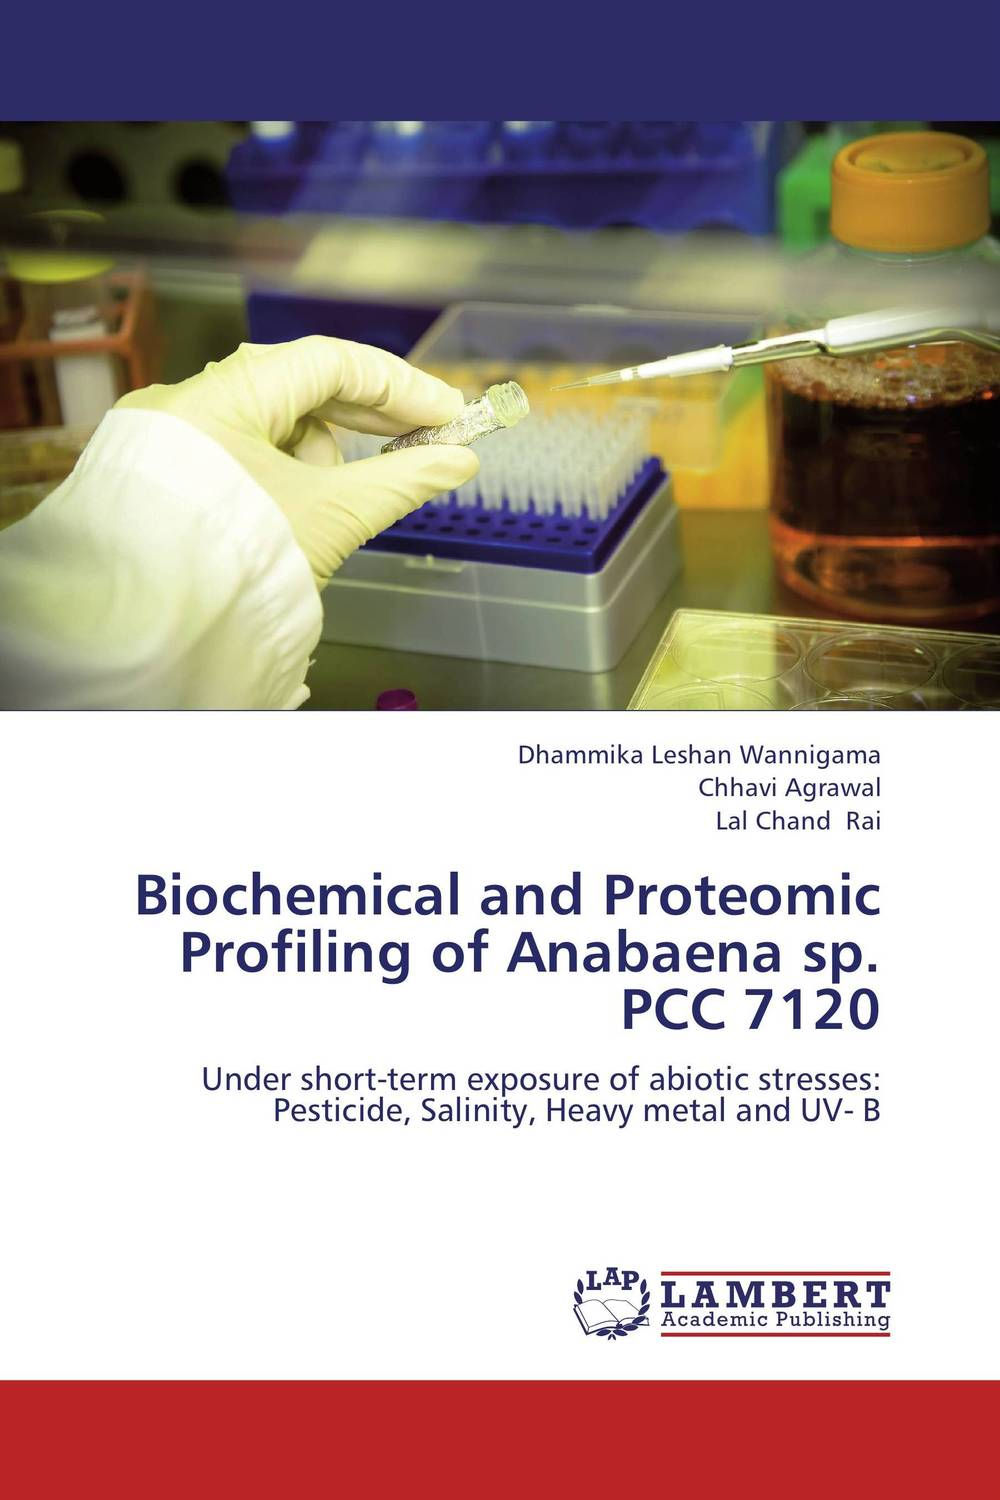 Biochemical and Proteomic Profiling of Anabaena sp. PCC 7120 impurity profiling of drugs and pharmaceuticals